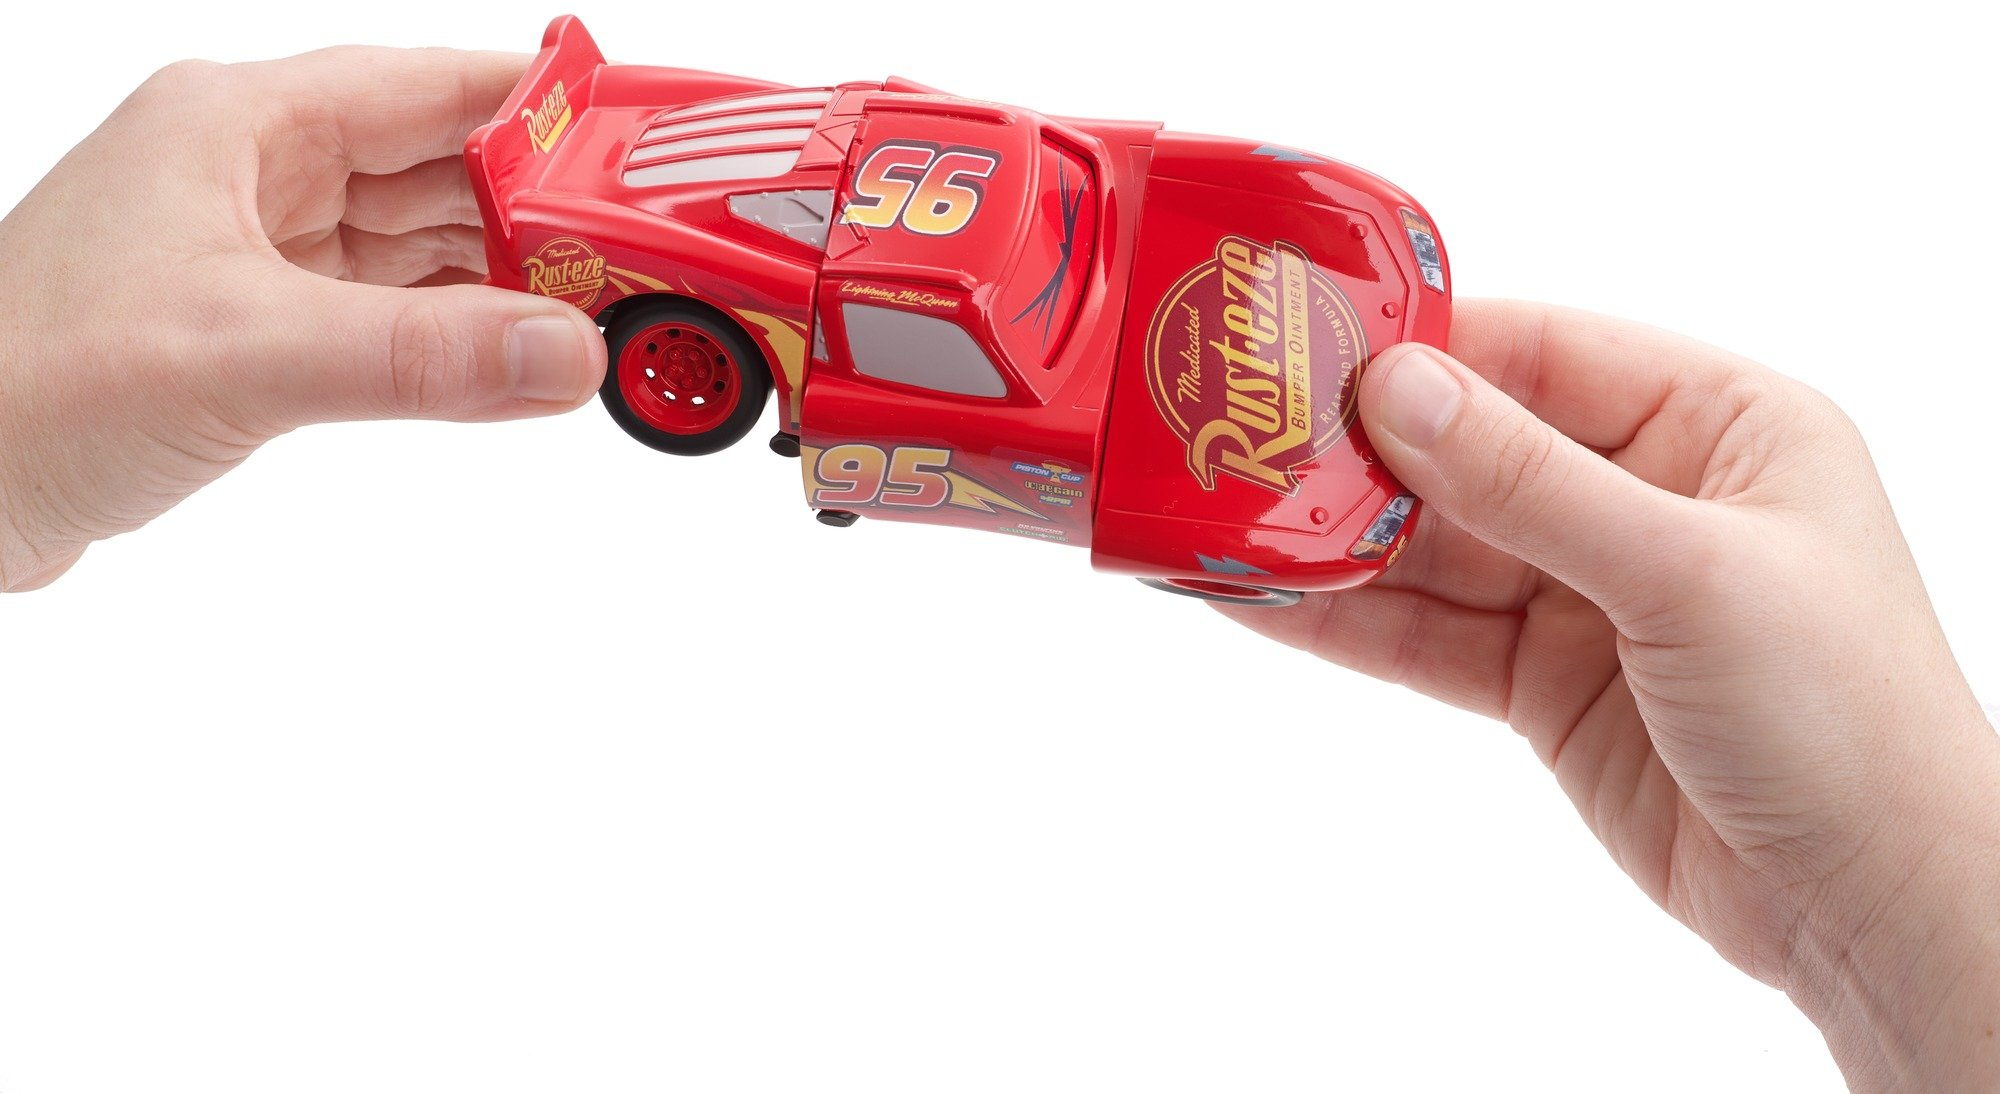 Disney DYW39 Pixar Cars 3 Race and Reck Lightning McQueen Vehicle Disney New Disney Pixar Cars 3 Twisted Crashers vehicle.  His body twists and his eyes change after the crash!  Restore him to his former; pre smash glory by simply twisting the car back into place! 7